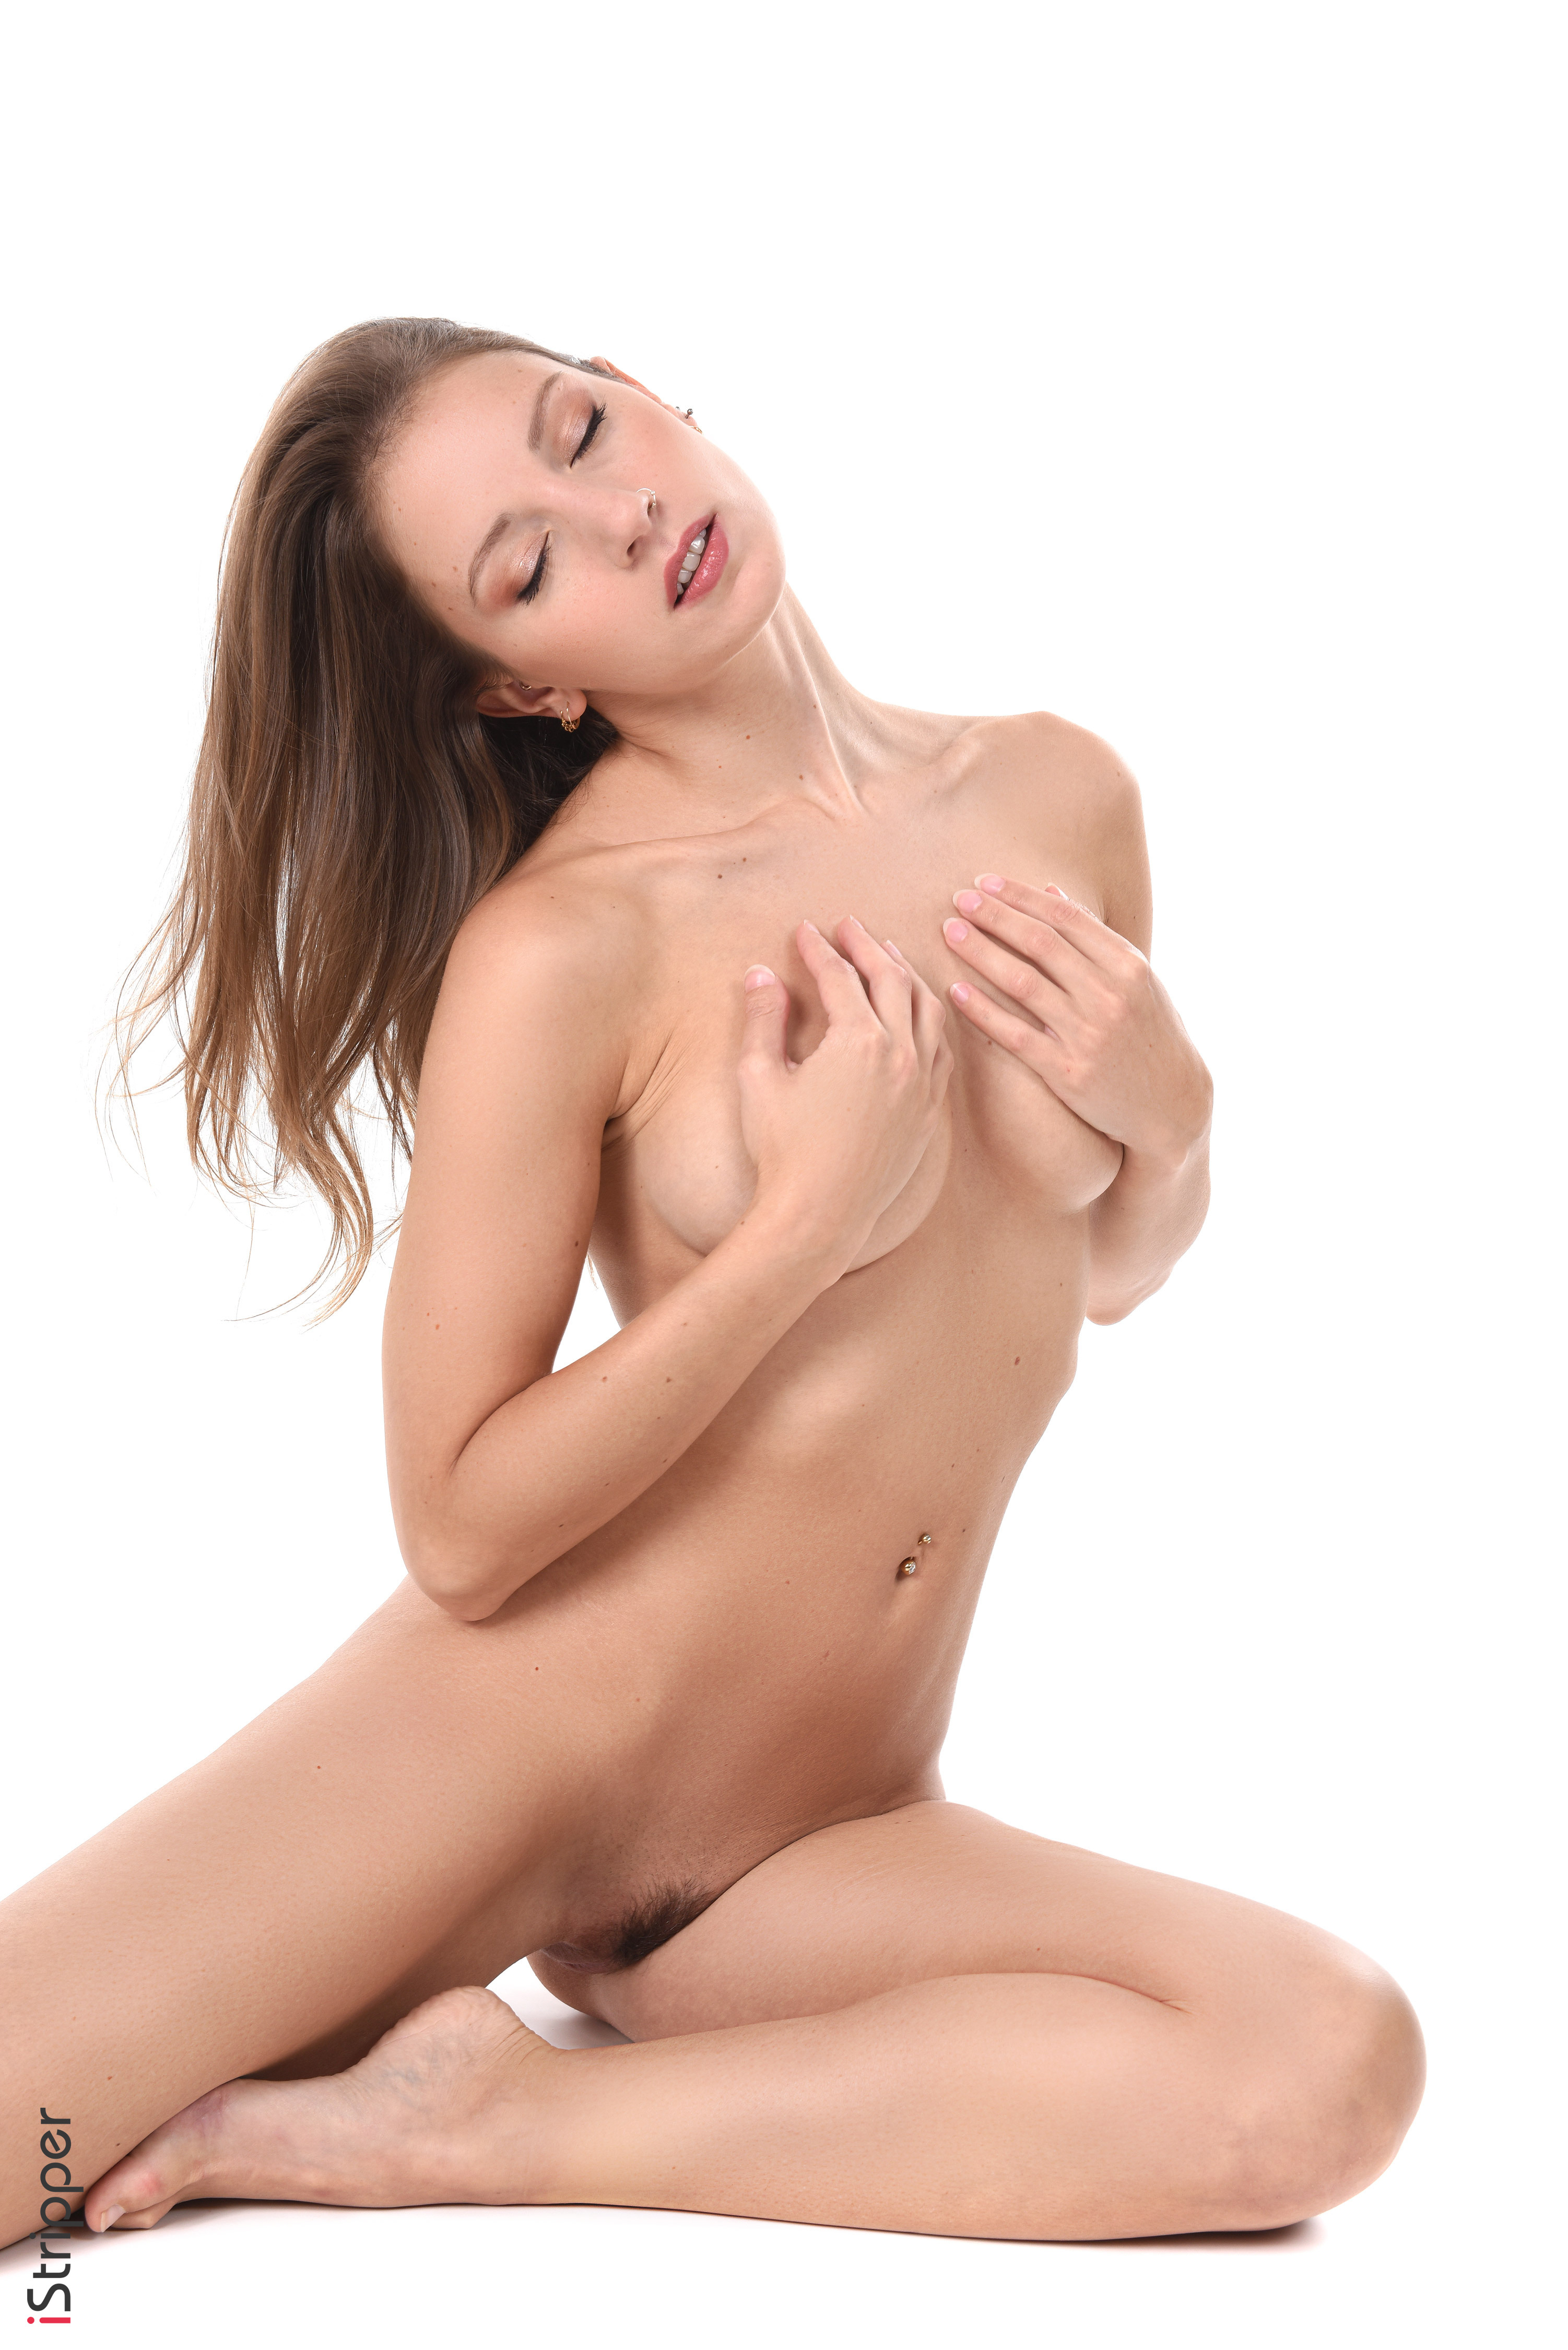 nude celebs,naked pictures playboy paparazzi photos videos fakes wallpapers